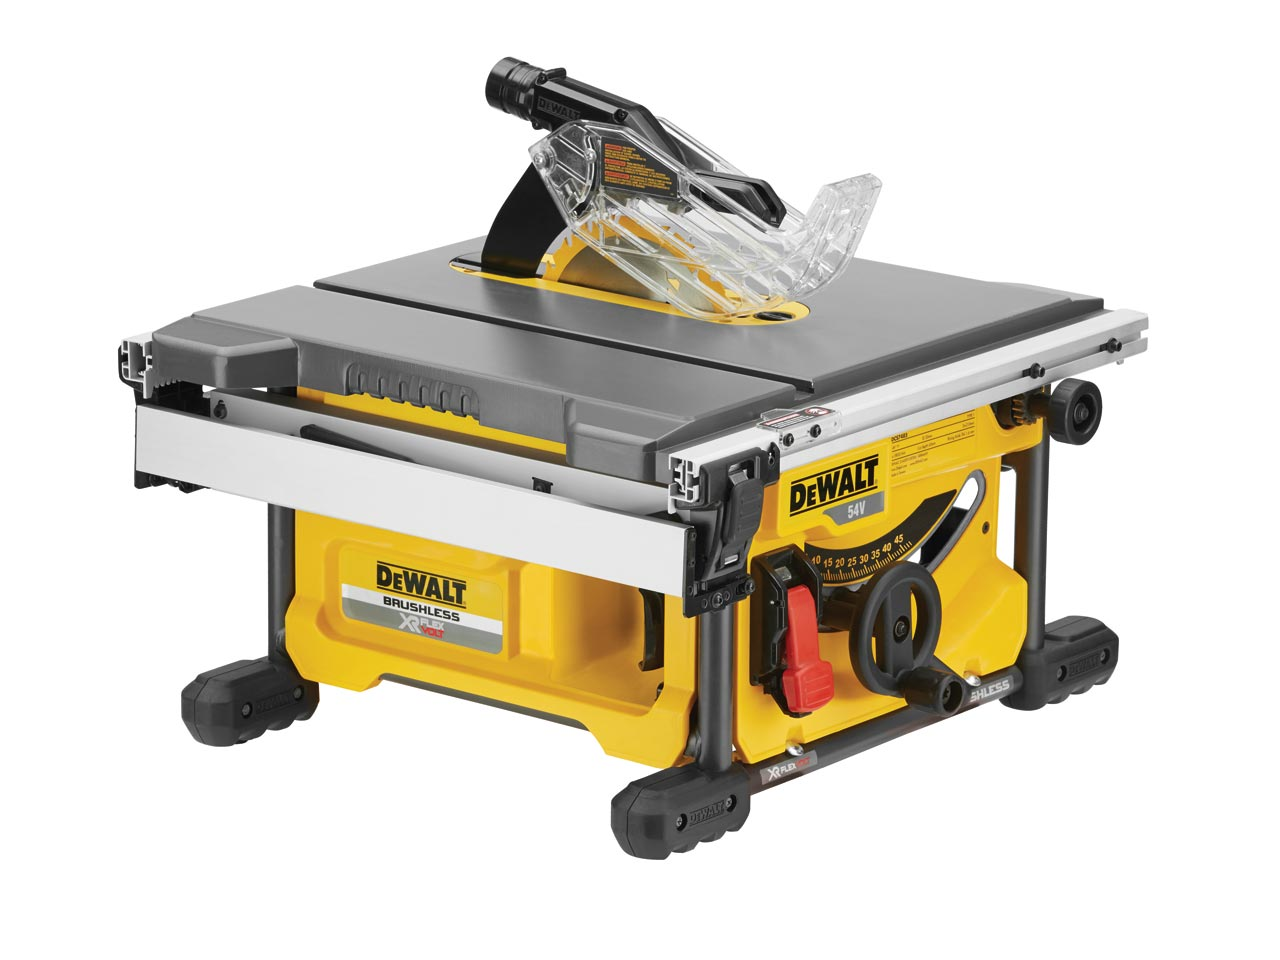 Dewalt dcs7485n xj 54v xr flexvolt 210mm table saw bare unit for 12 dewalt table saw